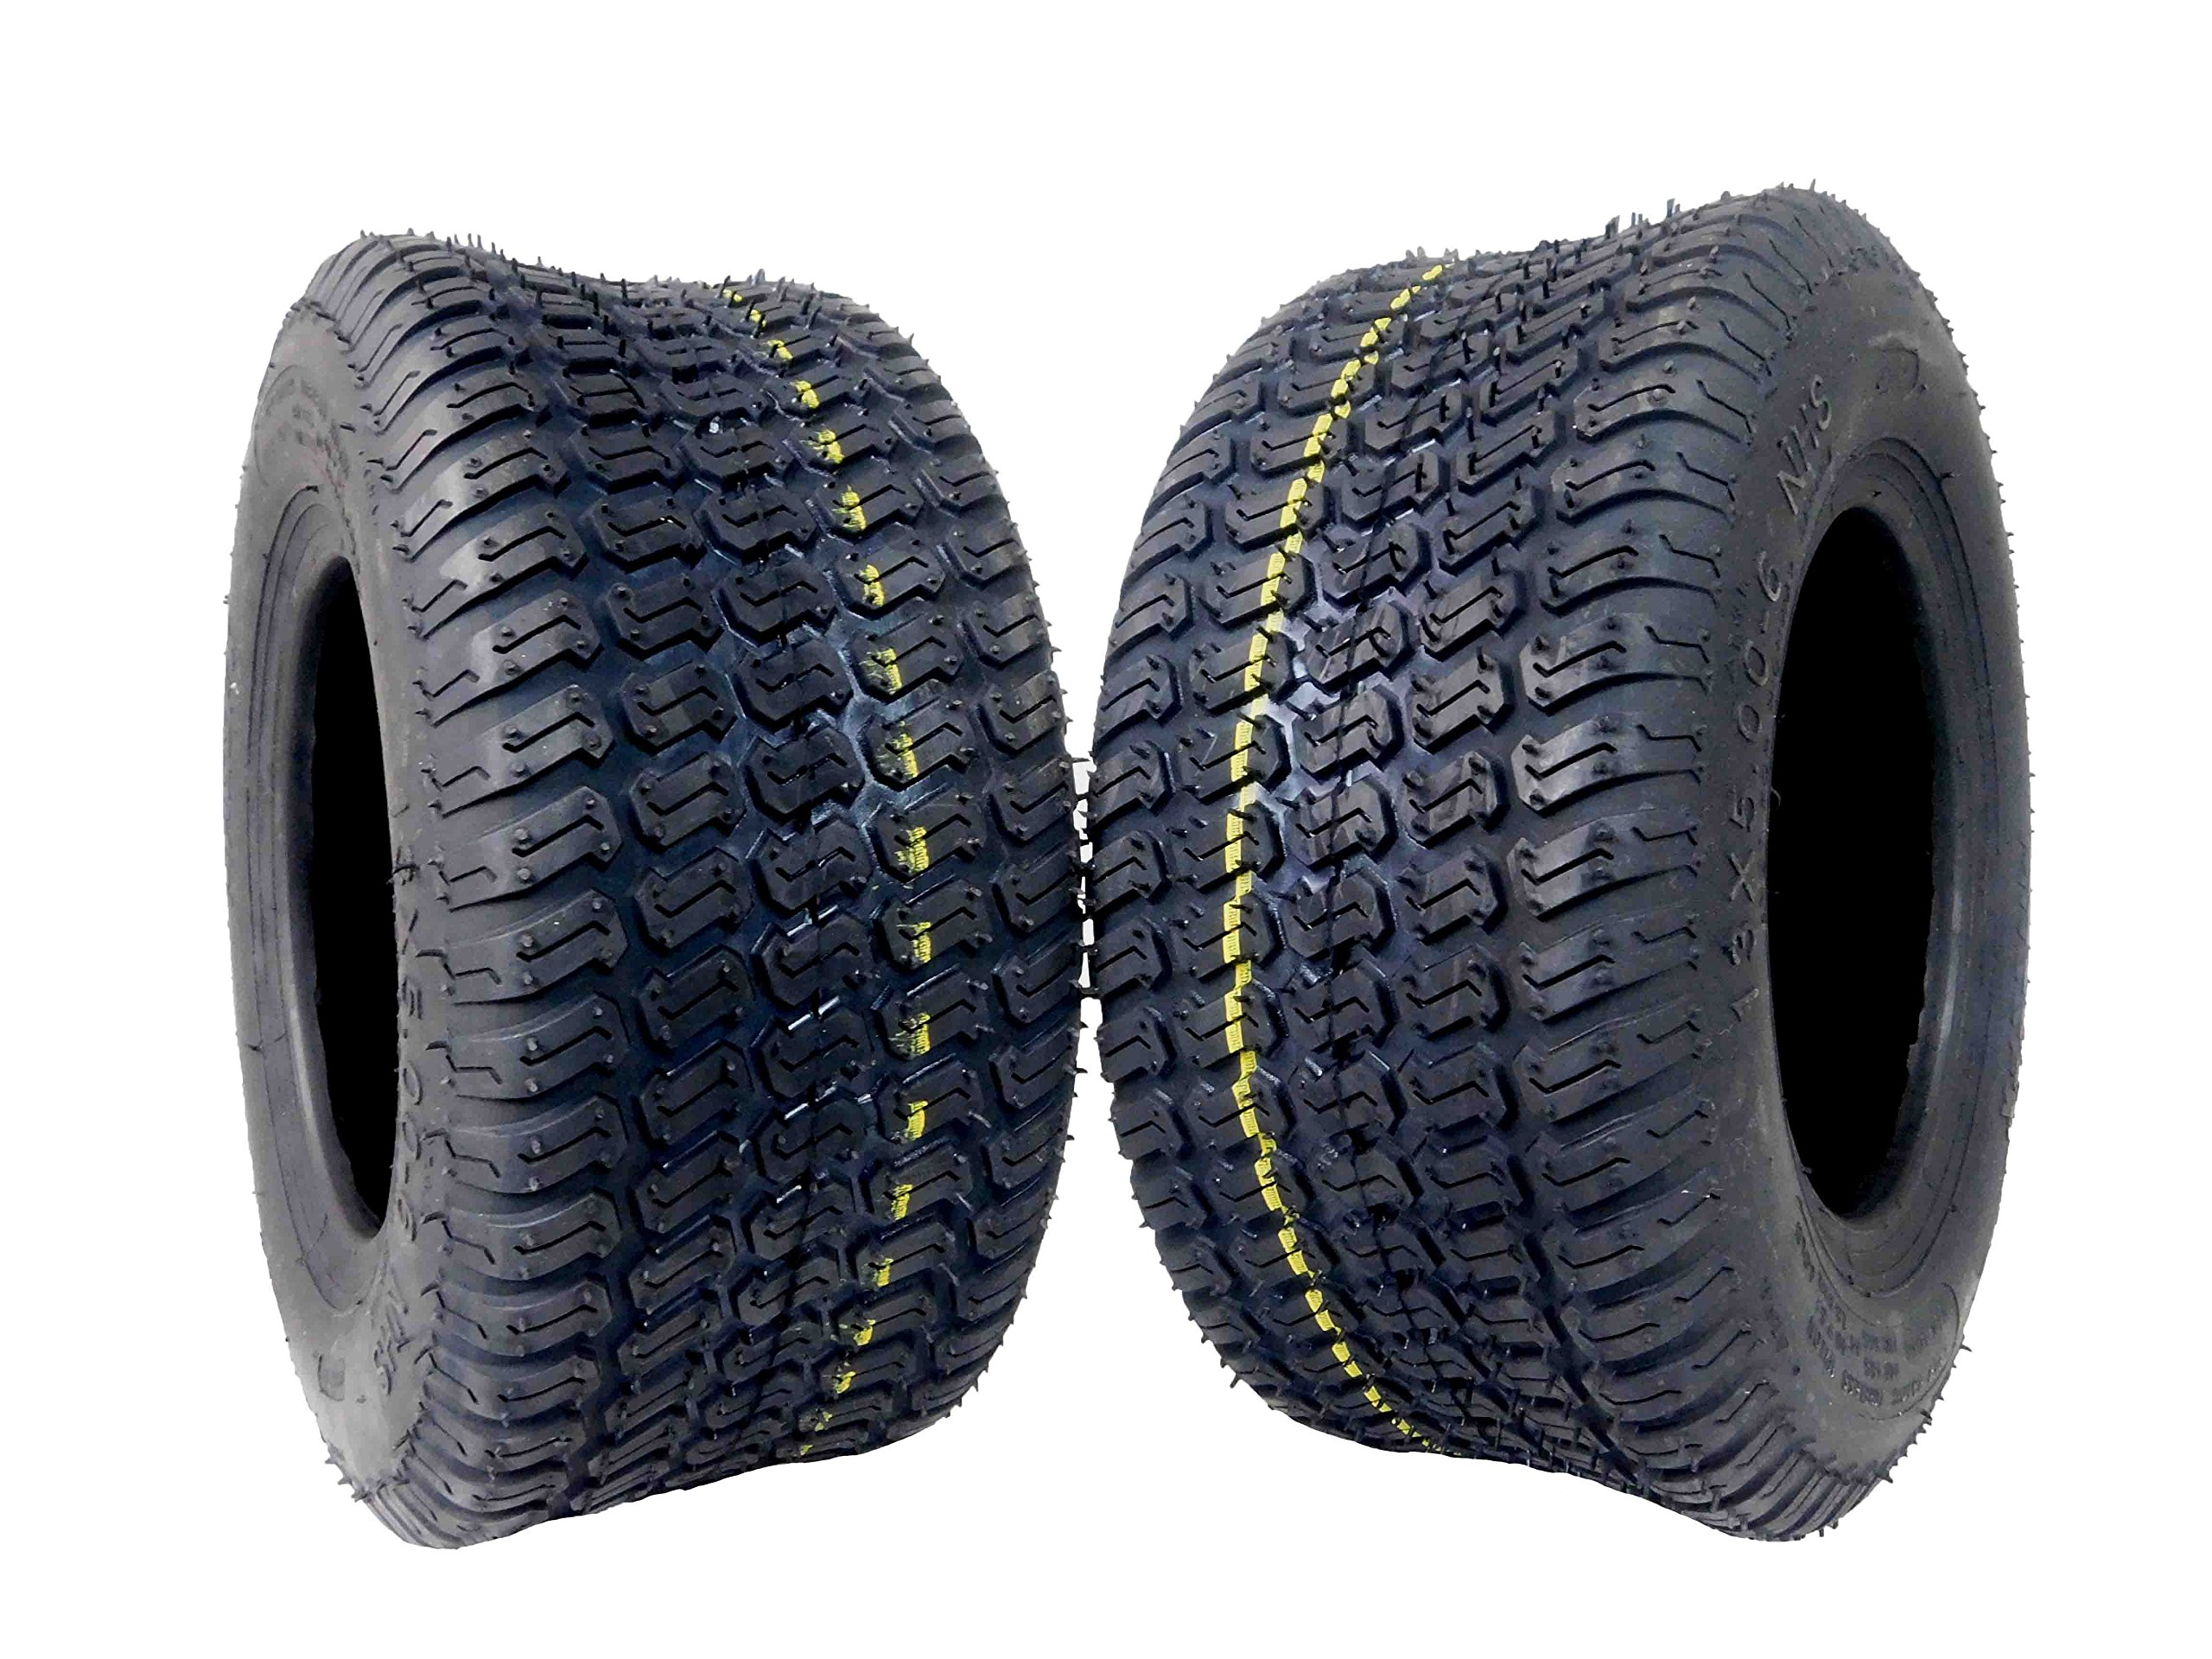 MASSFX Lawn Mower and Garden Tires 13x5-6 MO1356 4 PLY 3mm Tread 2 Tire Set